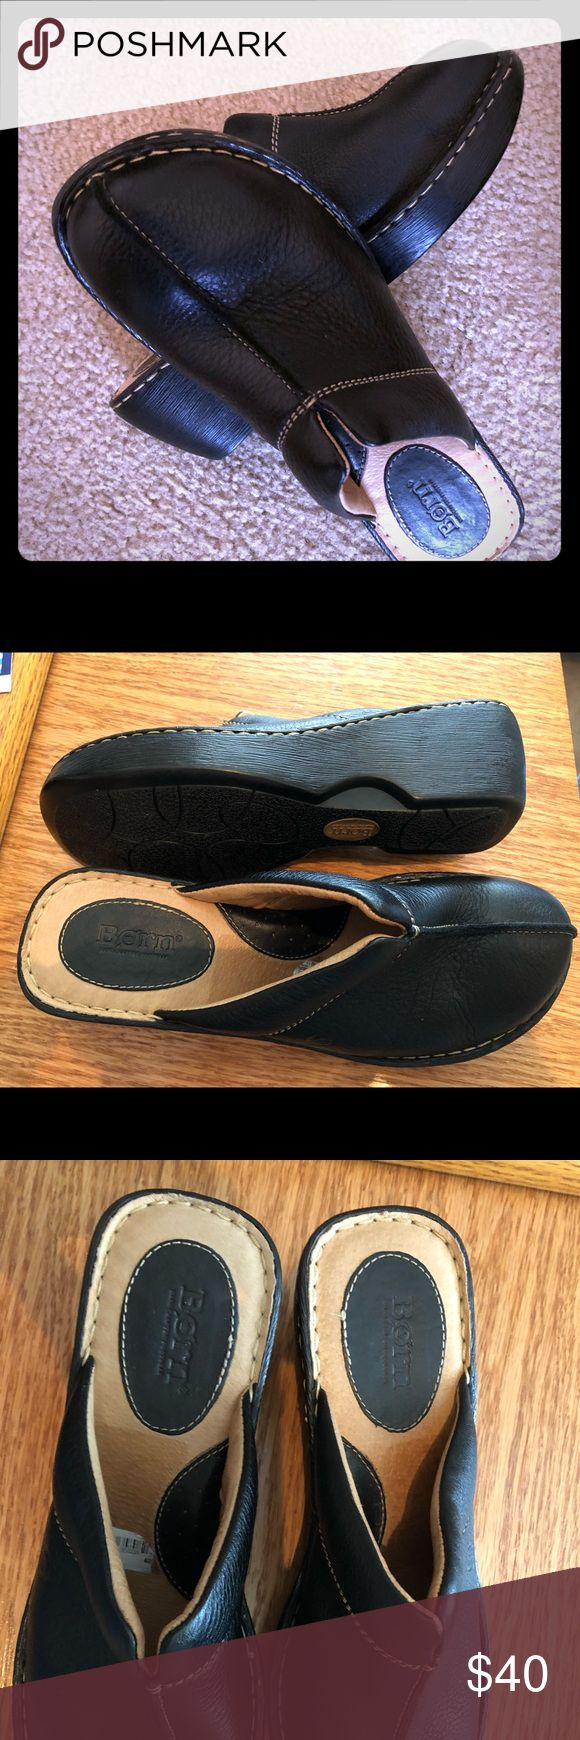 Born Classic Black Mule Clog Like New Born black classic mule clog. Like new worn very few times if at all. Leather uppers and linings with high quality outsoles that are lightweight and have shock absorbing properties. Very comfy!! Size 10/42 M/W Born Shoes Mules & Clogs